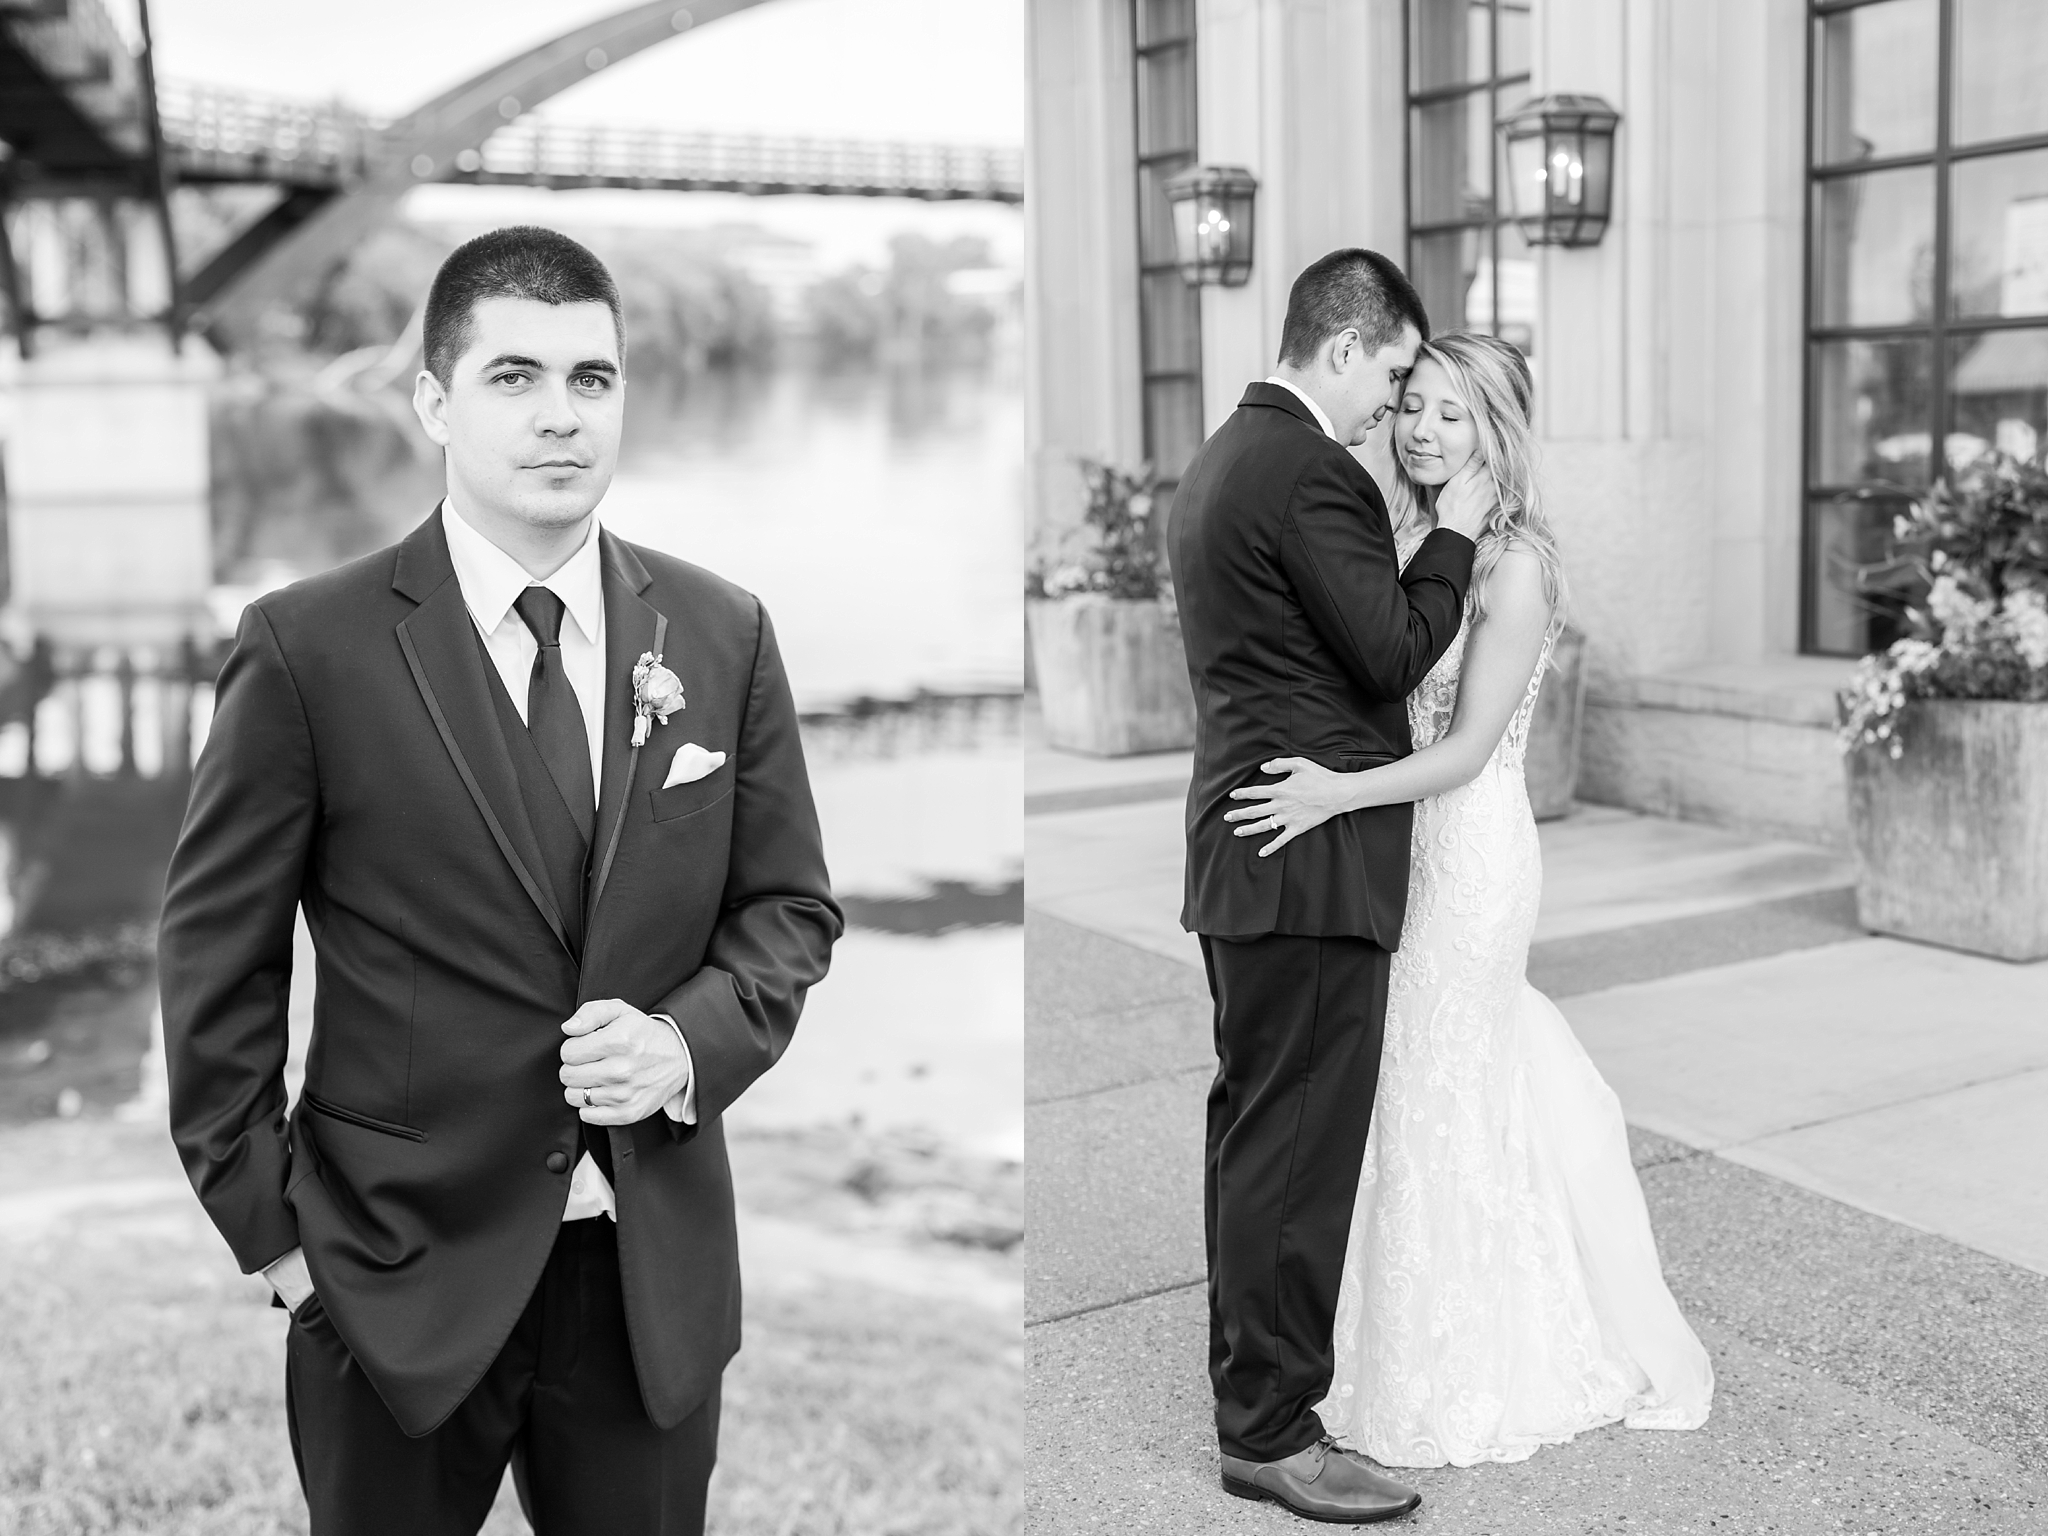 candid-romantic-wedding-photos-at-the-h-hotel-in-midland-michigan-by-courtney-carolyn-photography_0112.jpg